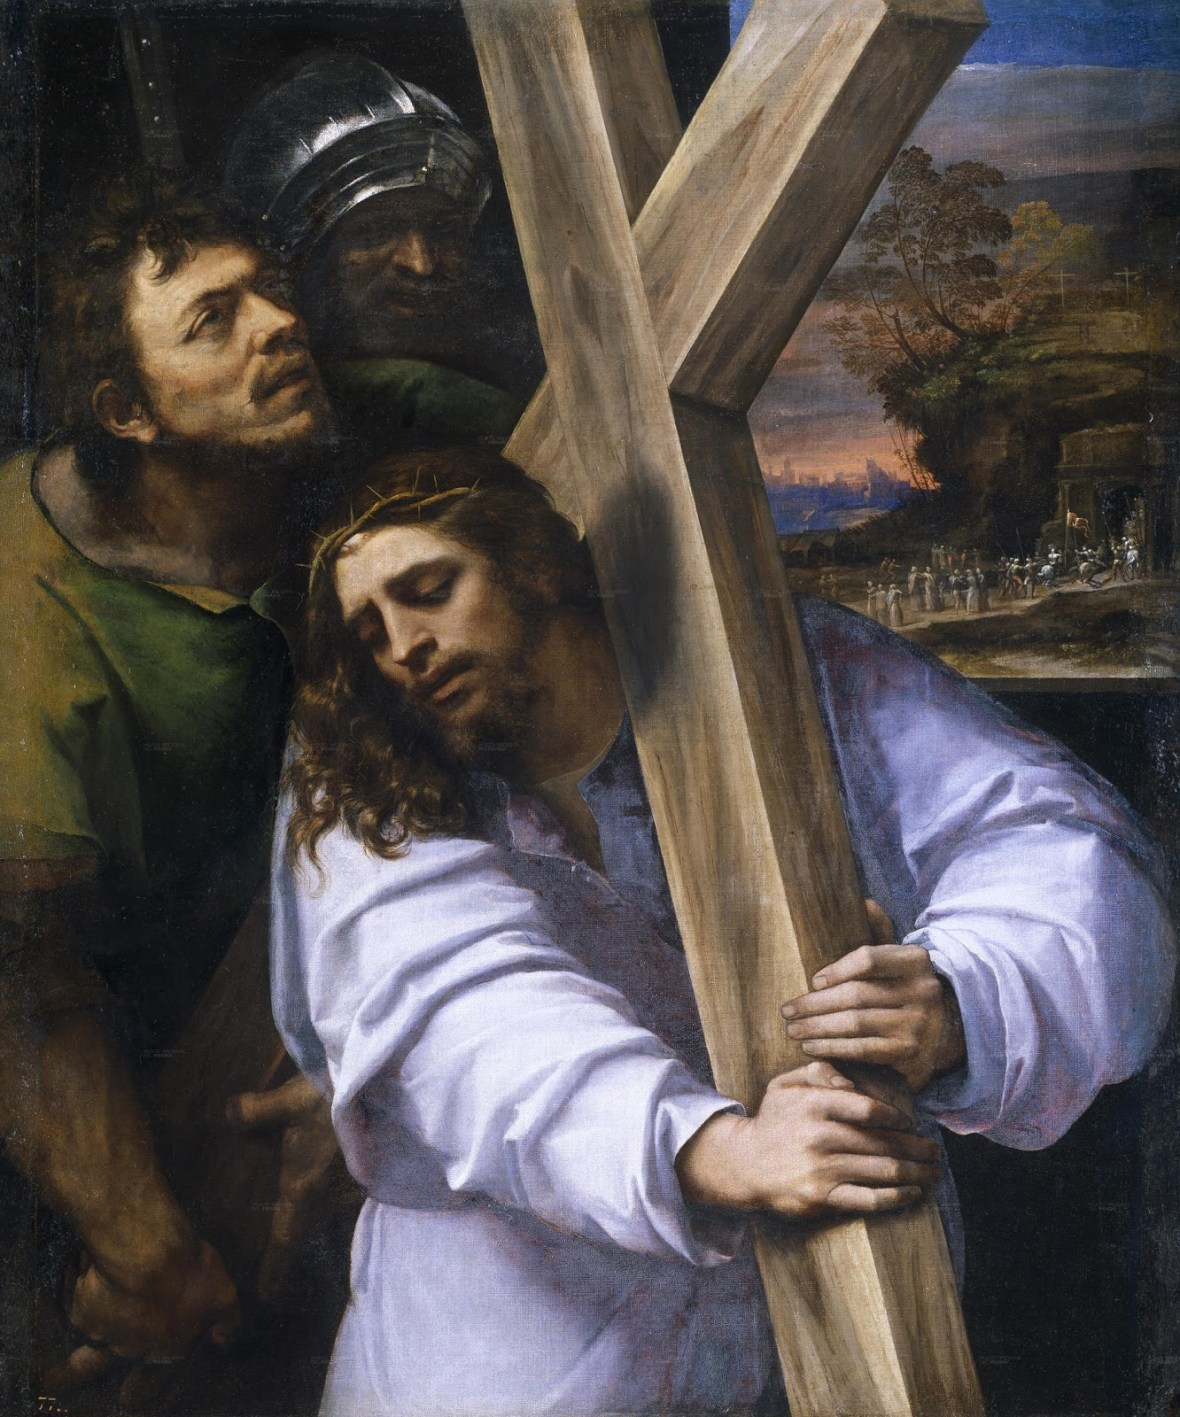 Sebastiano del Piombo, Jesus Carrying the Cross, 1516